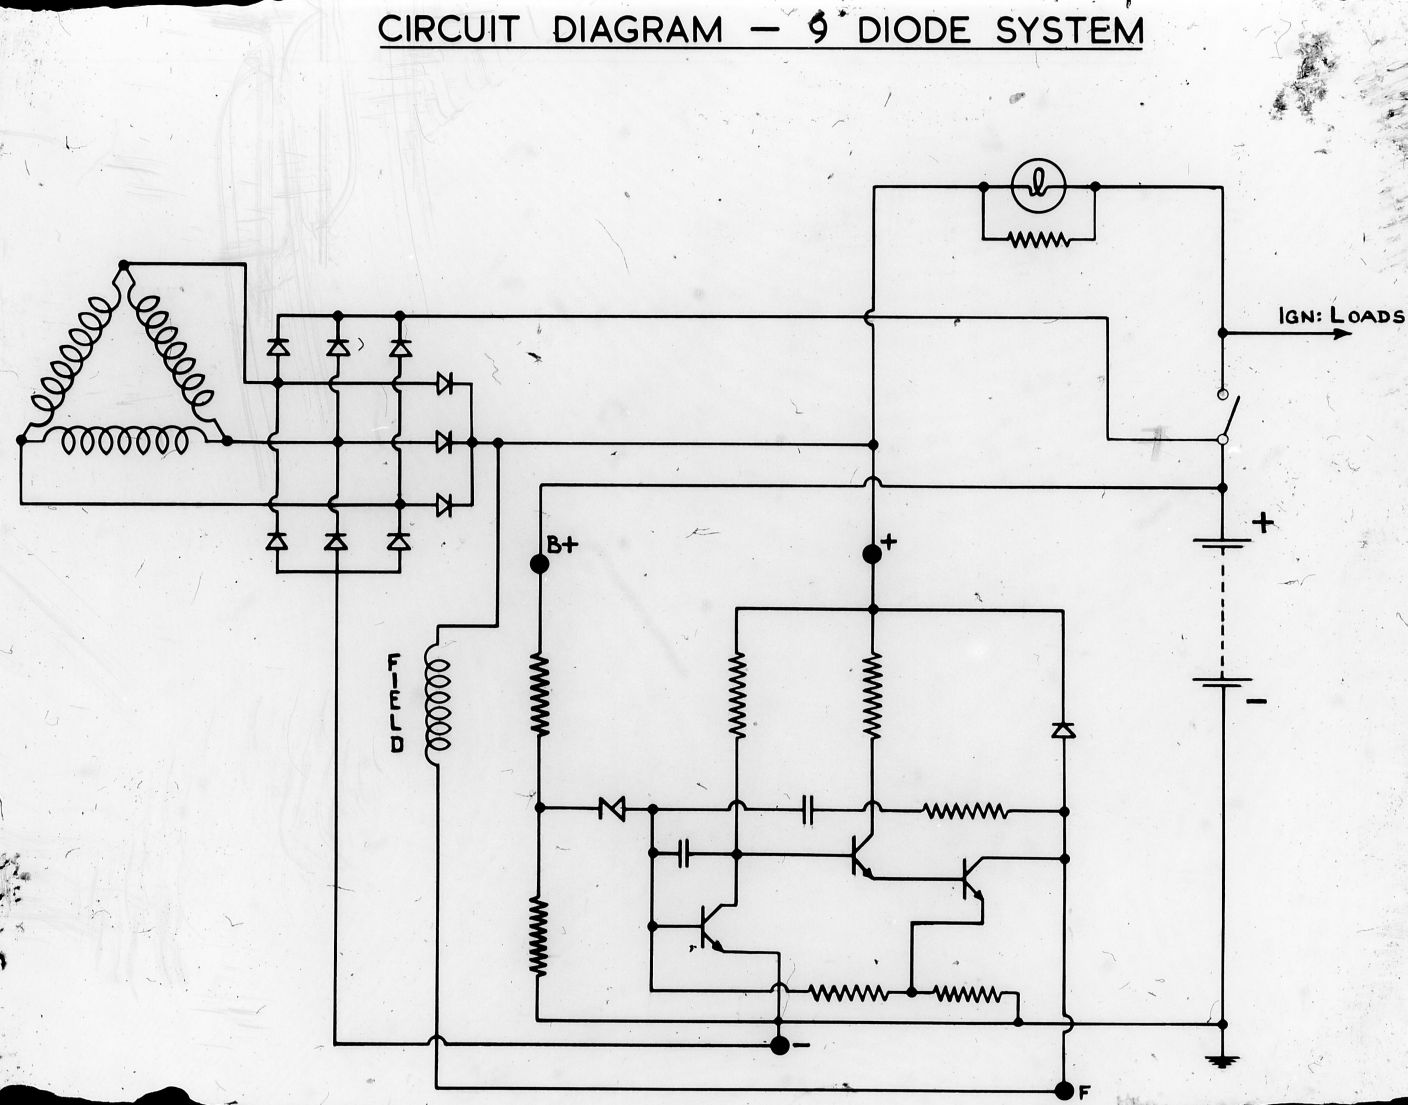 BBEC987 Lucas Acr 15 Wiring Diagram | Wiring Resources on lucas a127 alternator, lucas alternator parts, lucas alternator cross reference, lucas alternator testing, lucas alternator connections,